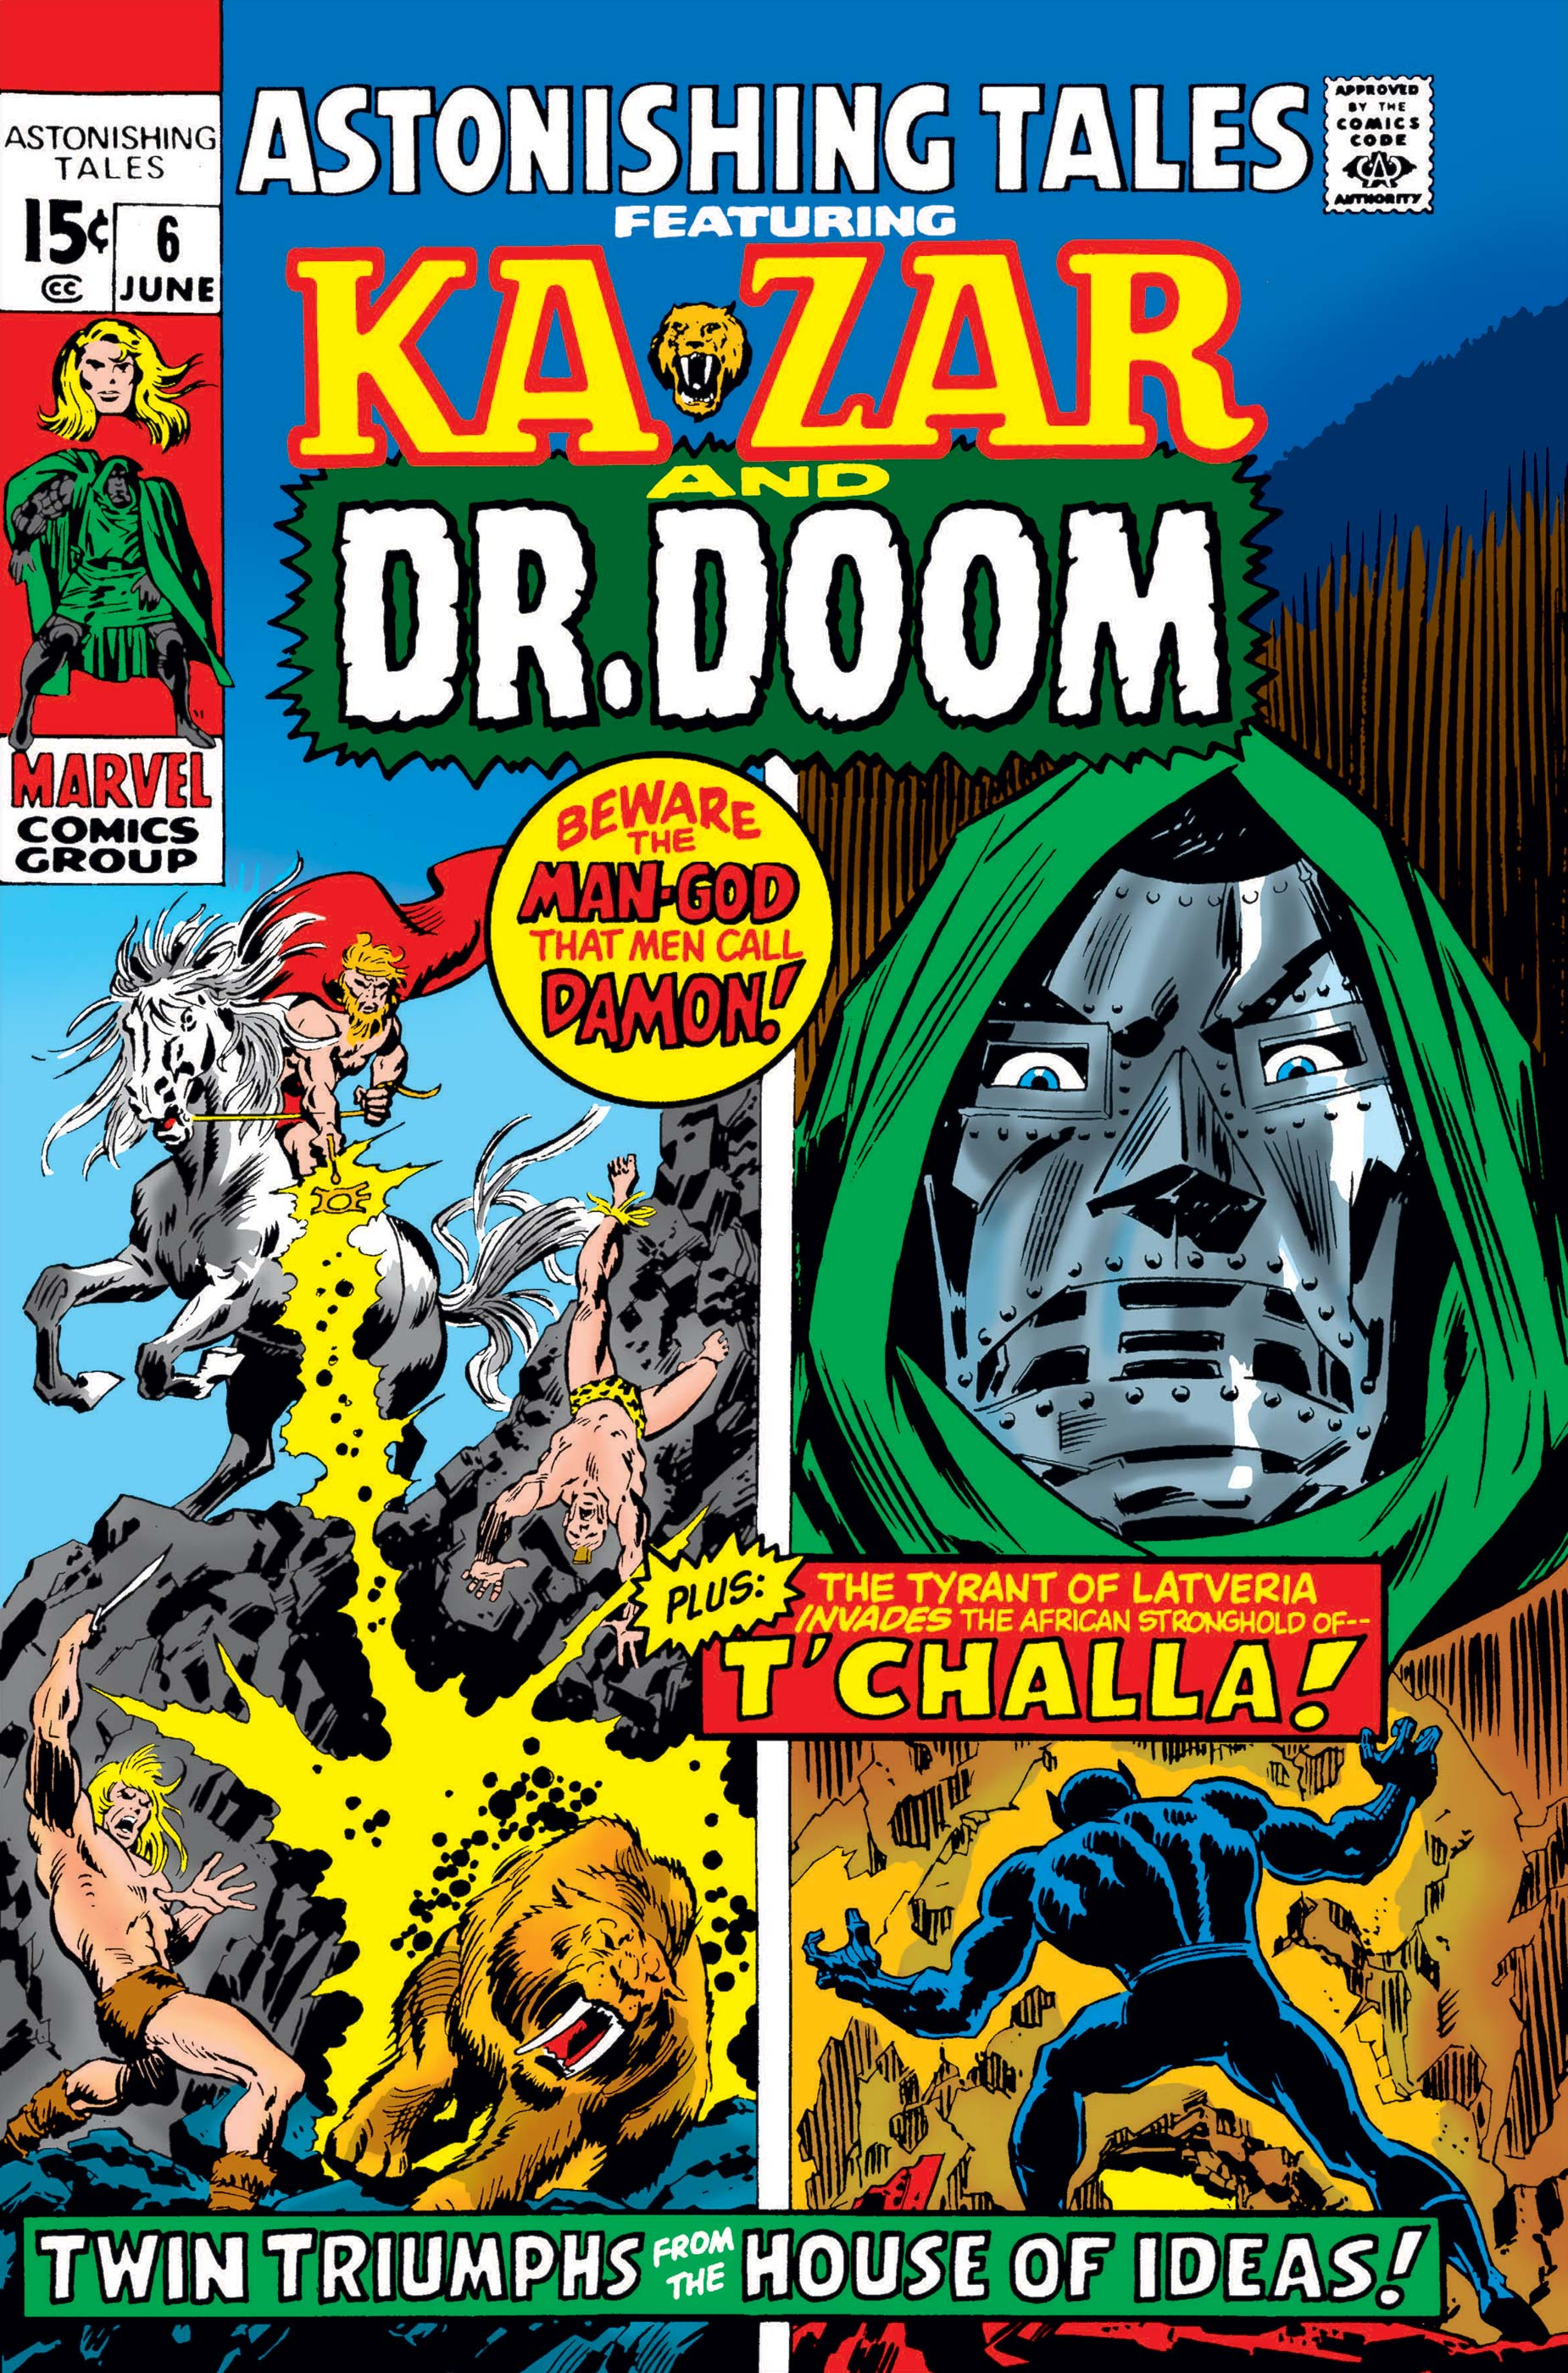 Astonishing Tales (1970) #6